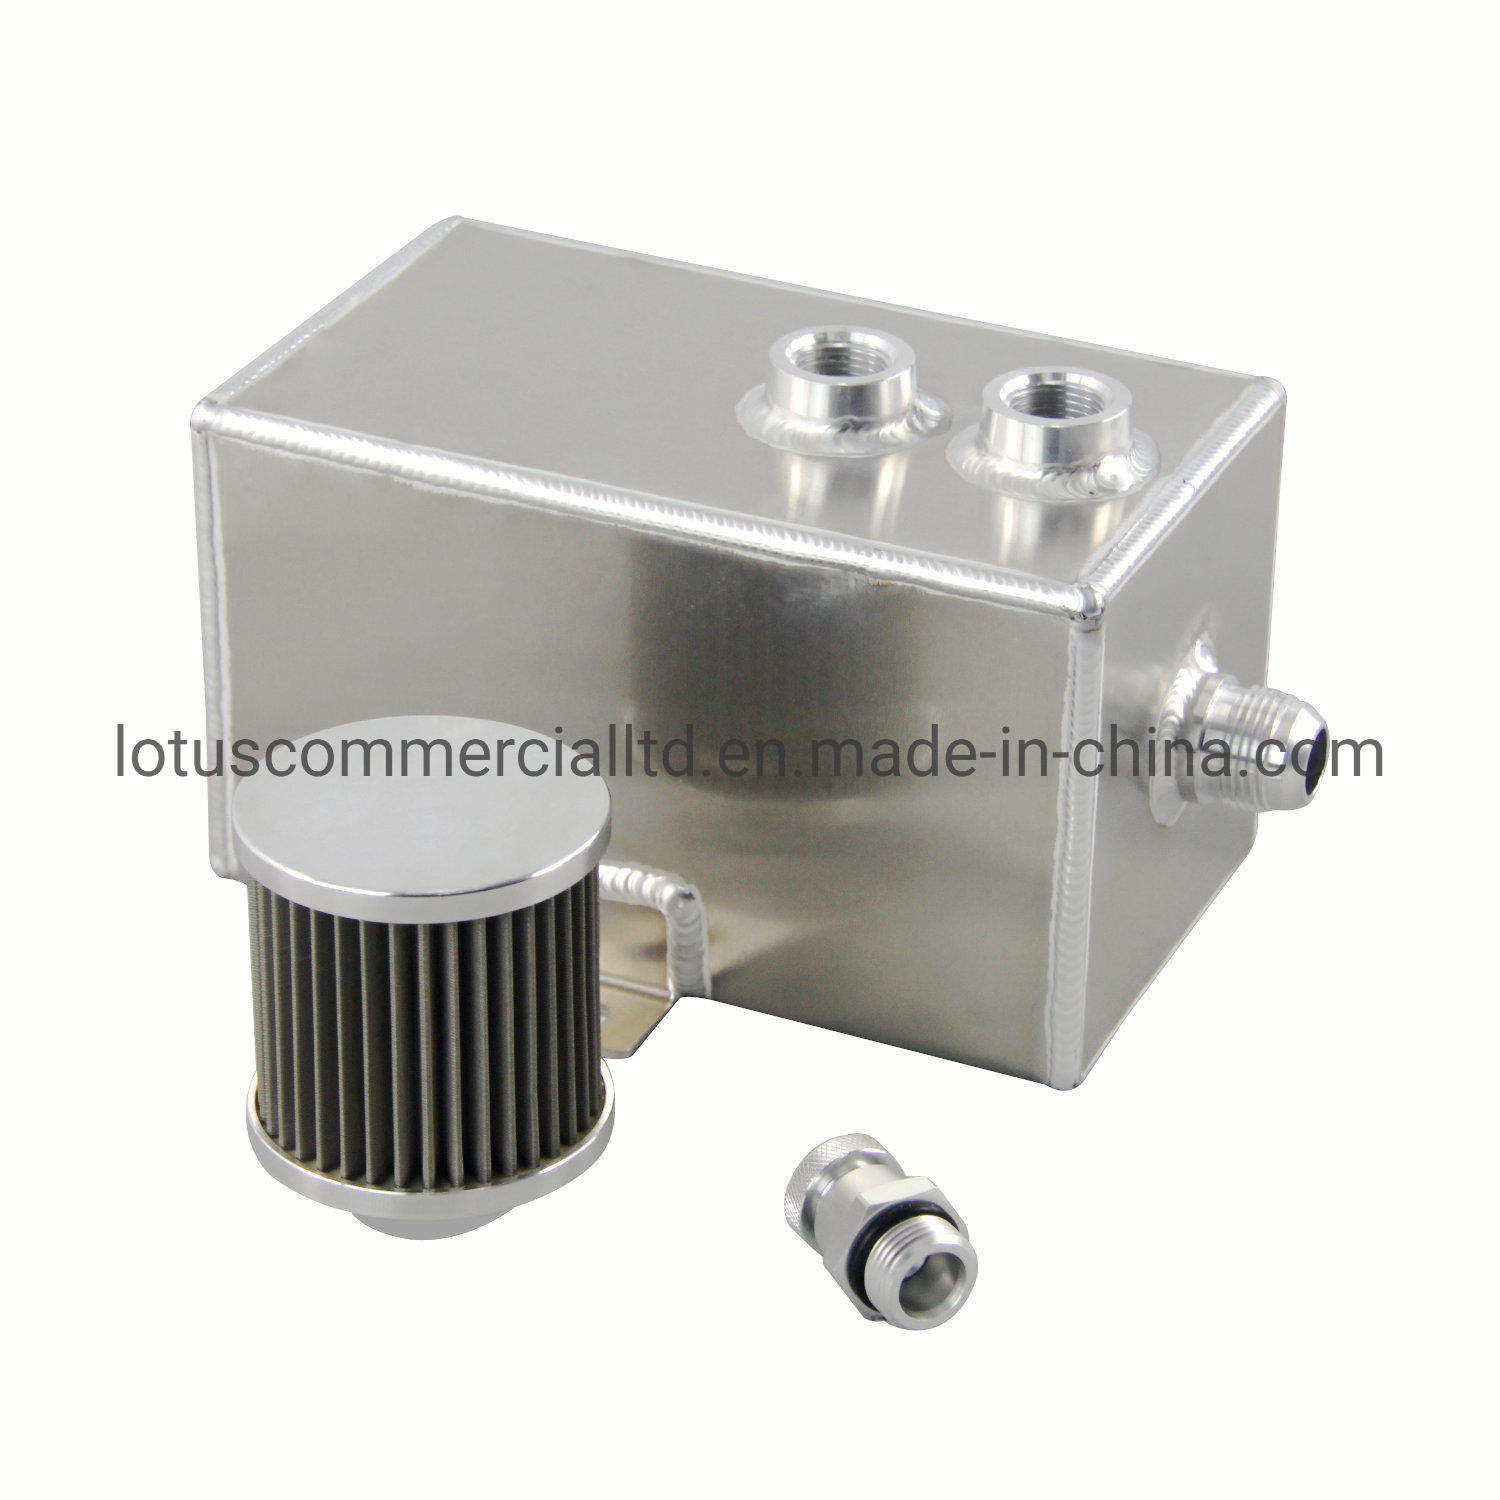 Oil Catch Can Kit Car Universal Oil Catch Can with Air Filters and Other Accessories Engine Tank Filters